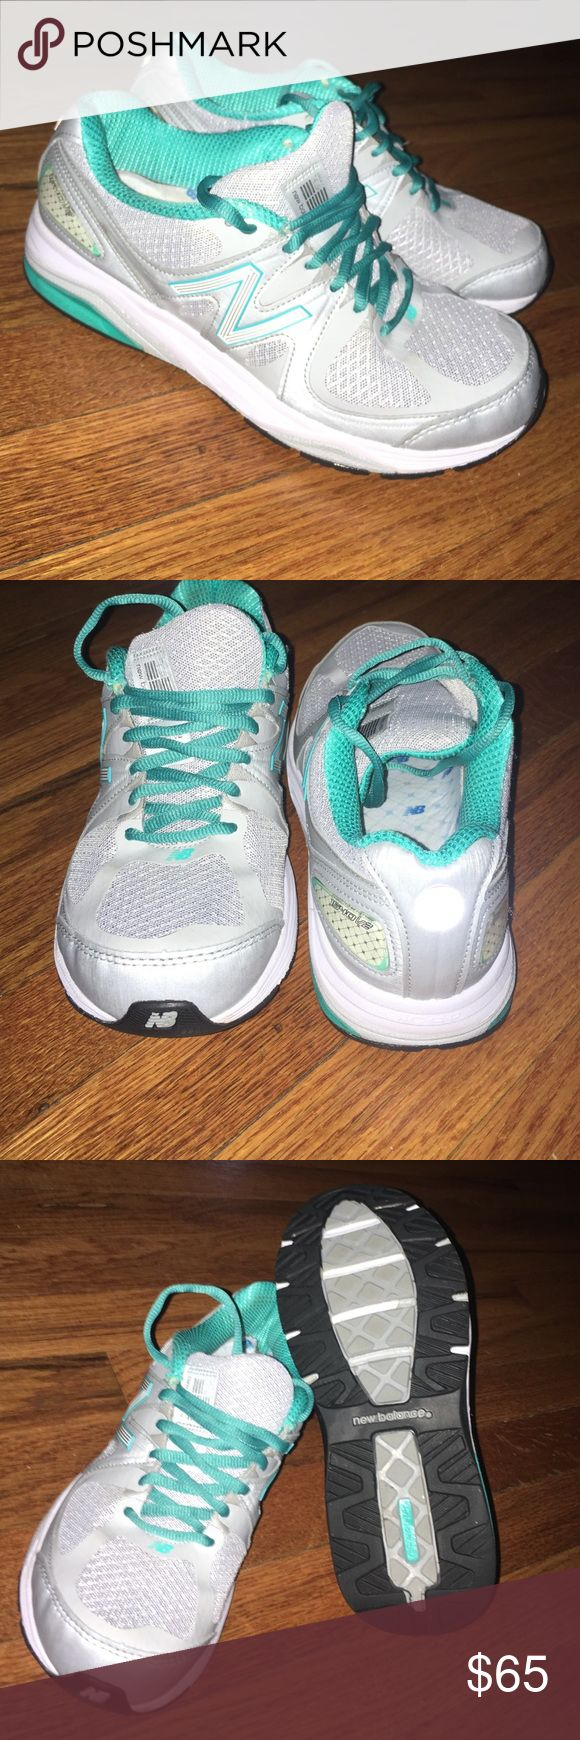 New Balance 154OV2 women's shoes Very nice shoe like new worn only twice New Balance Shoes Athletic Shoes